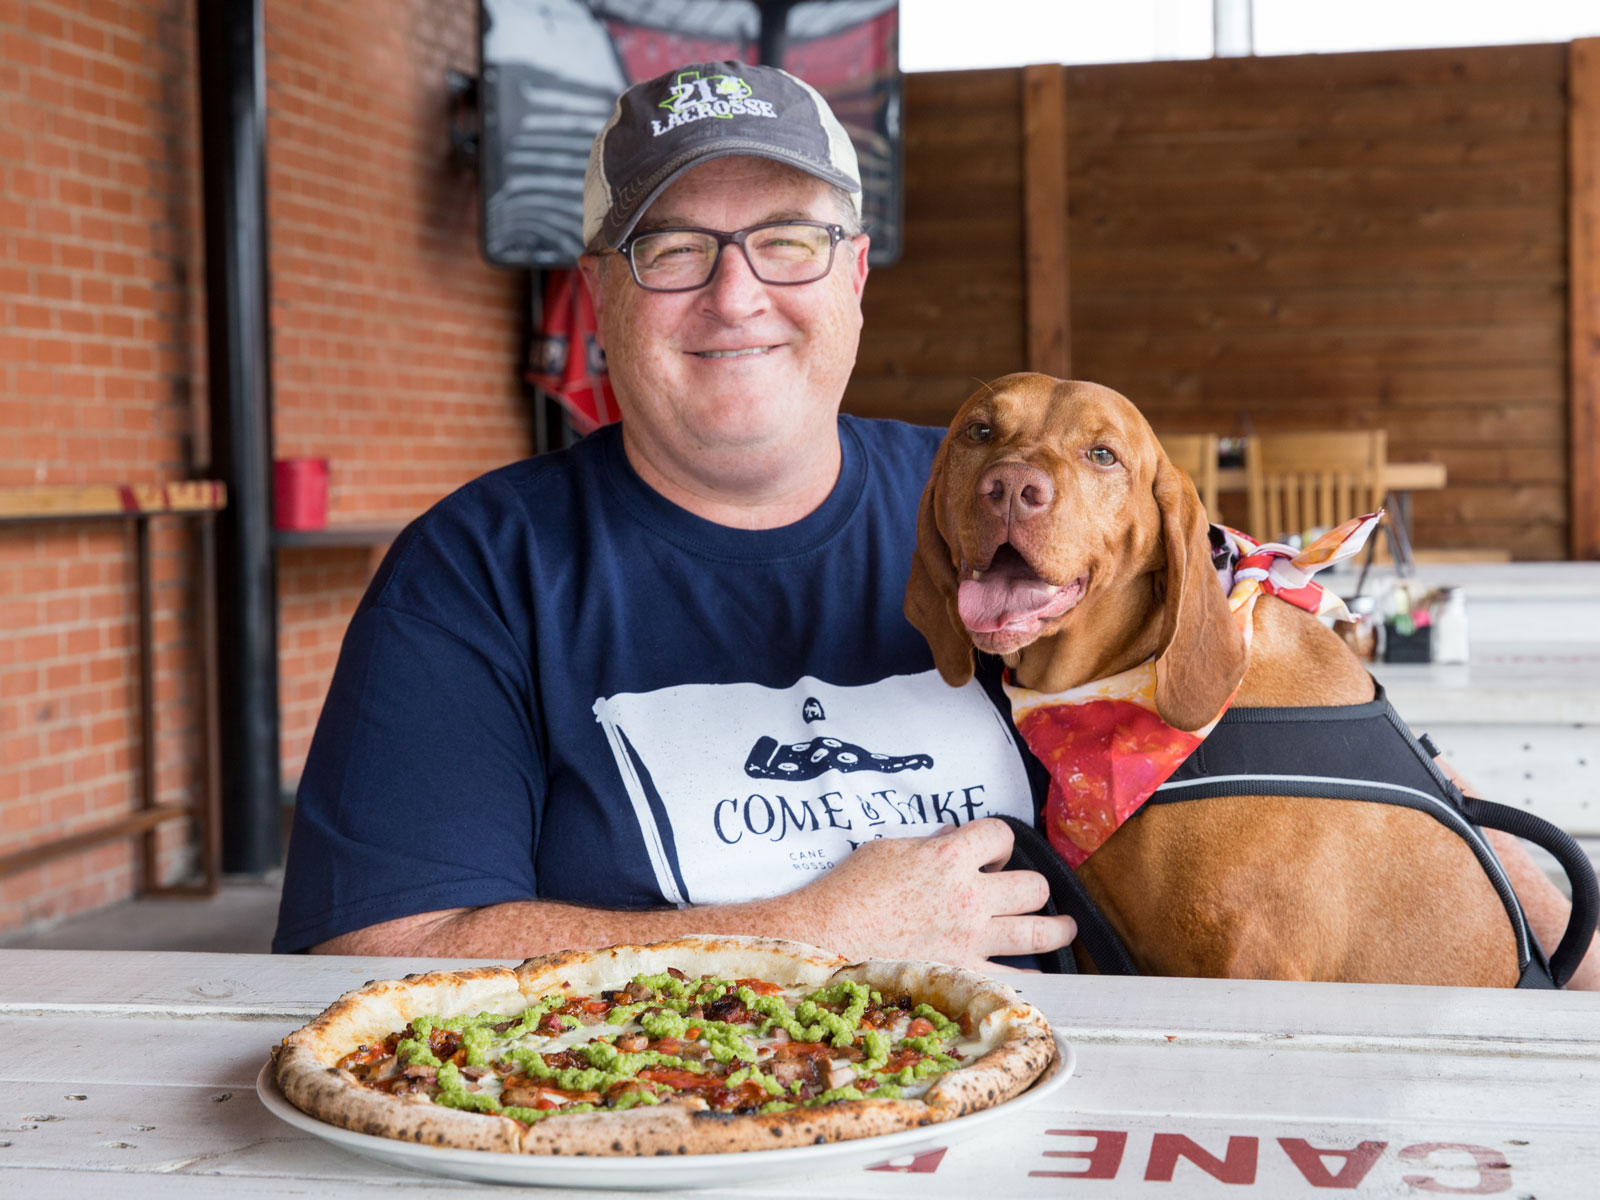 Where Dallas's Hottest Pizza Chef Eats on His Days Off